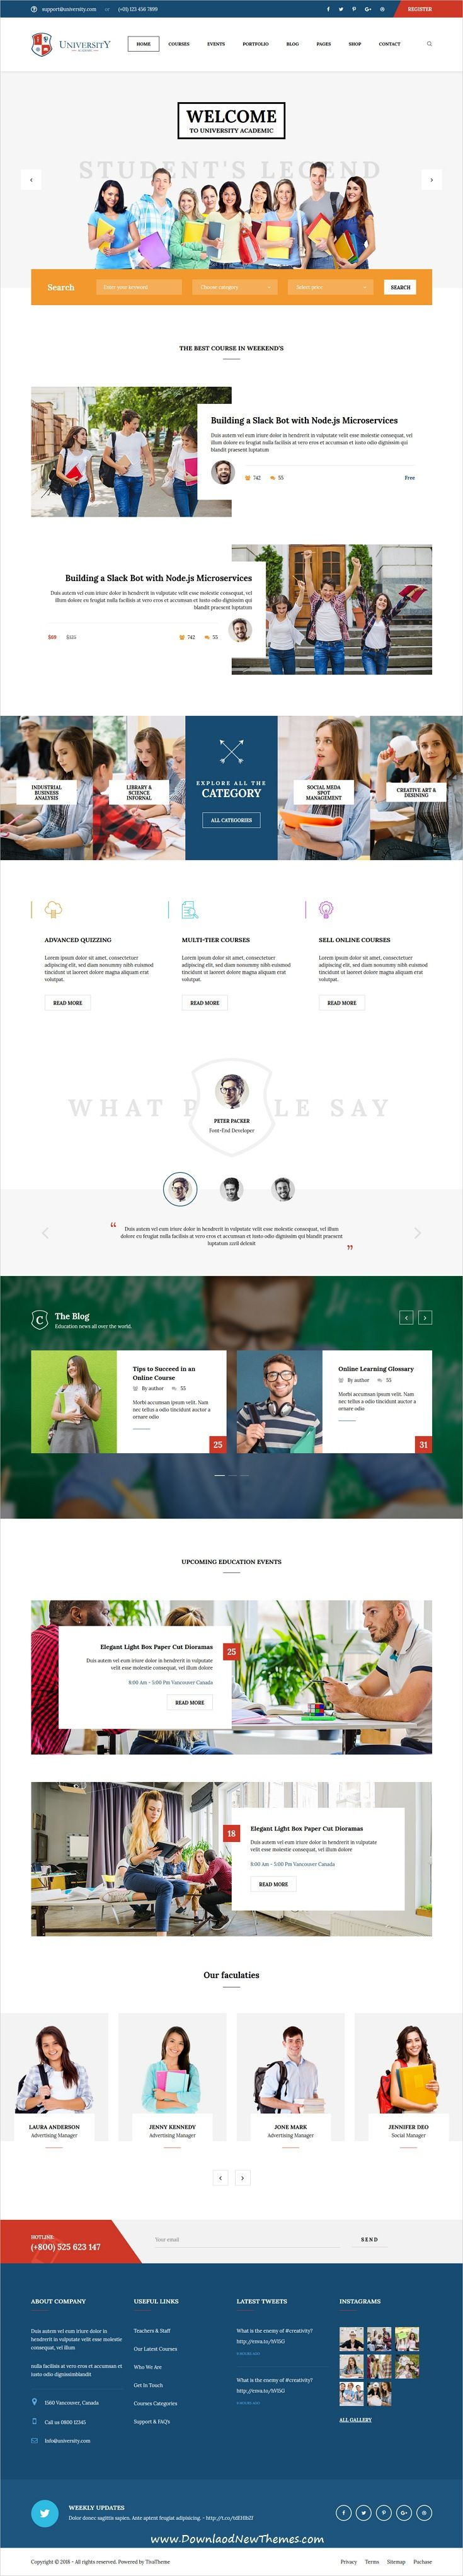 University Is Clean And Modern Design 6in1 Responsive Bootstrap Html5 Theme For University College Online Cours Education Web Layout Design Online Courses